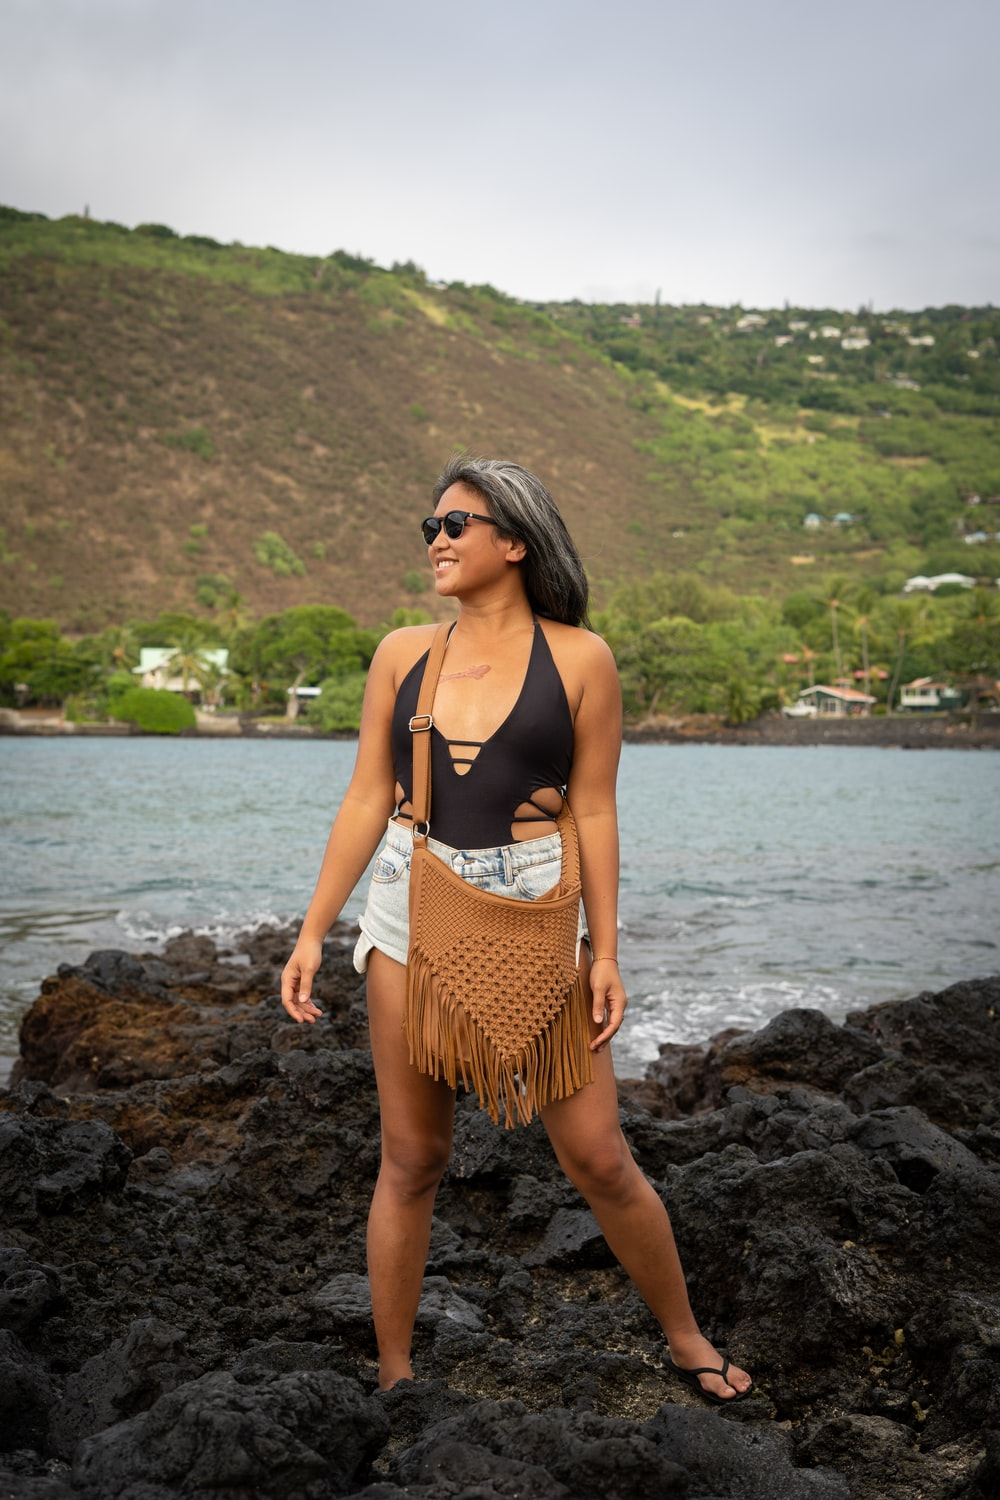 woman in black and brown polka dot bikini standing on rocky shore during daytime